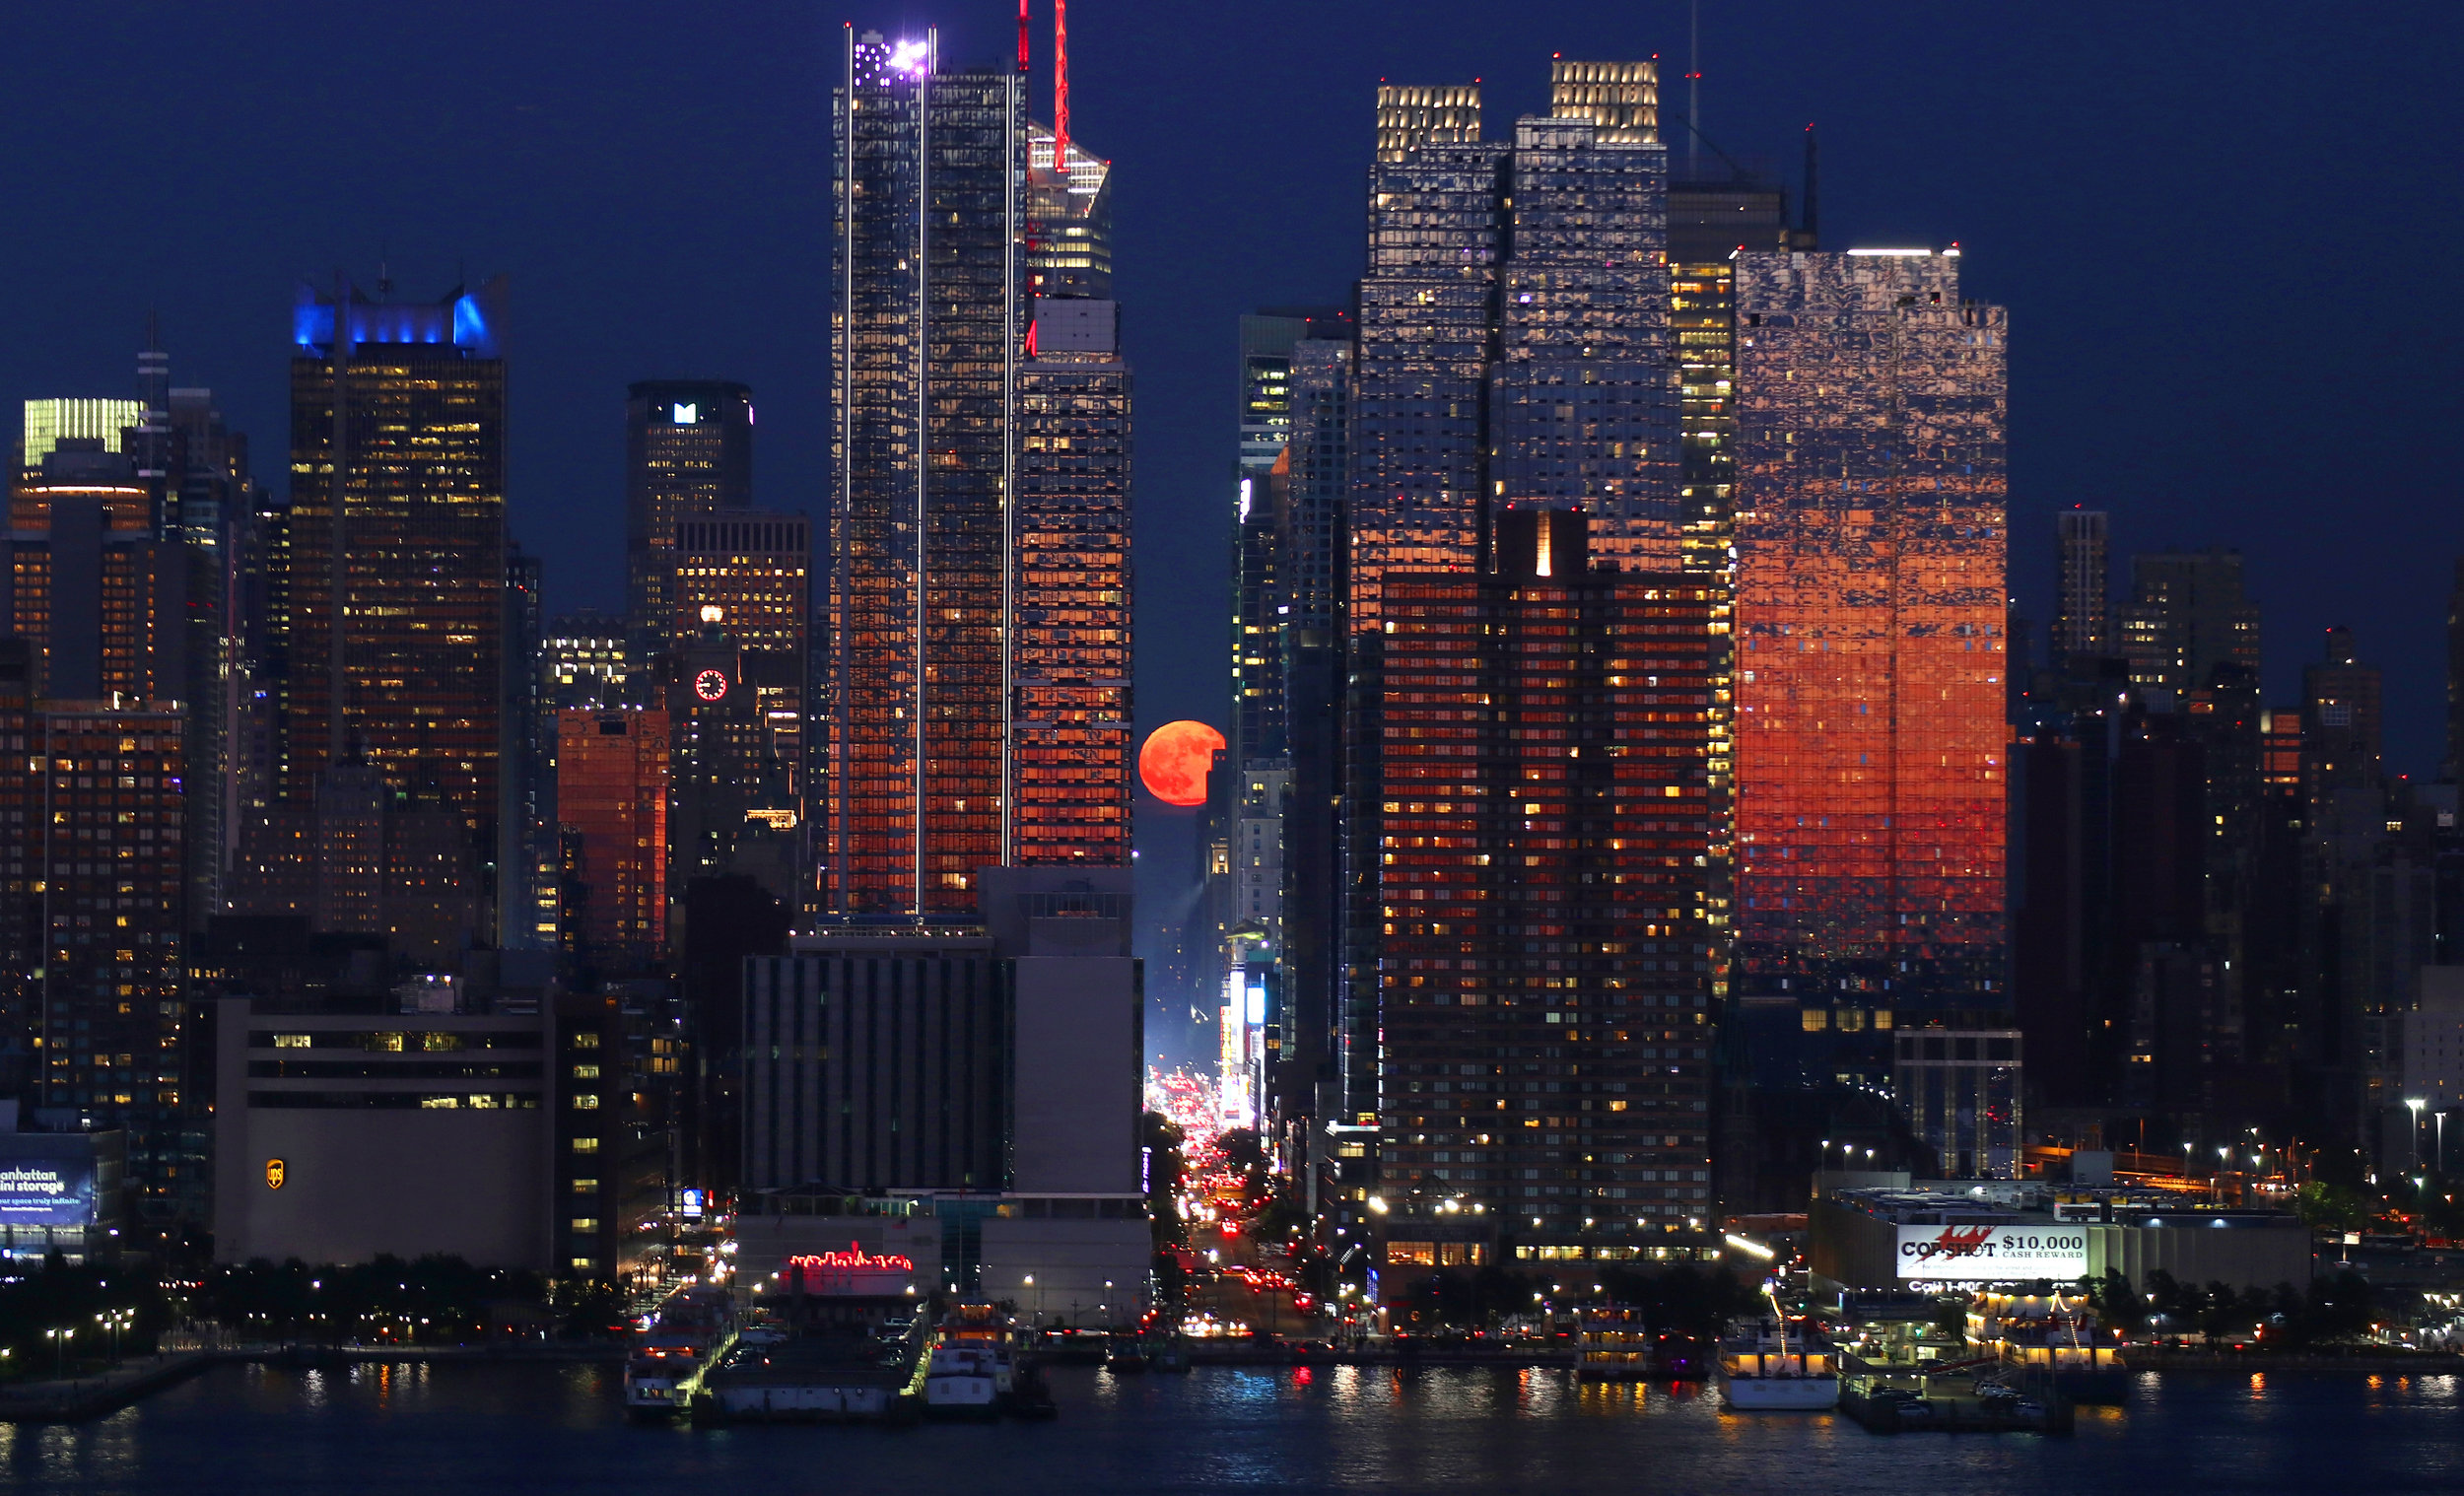 - 1st Place - Gary Hershorn - 42nd Street Moonrise - Independent